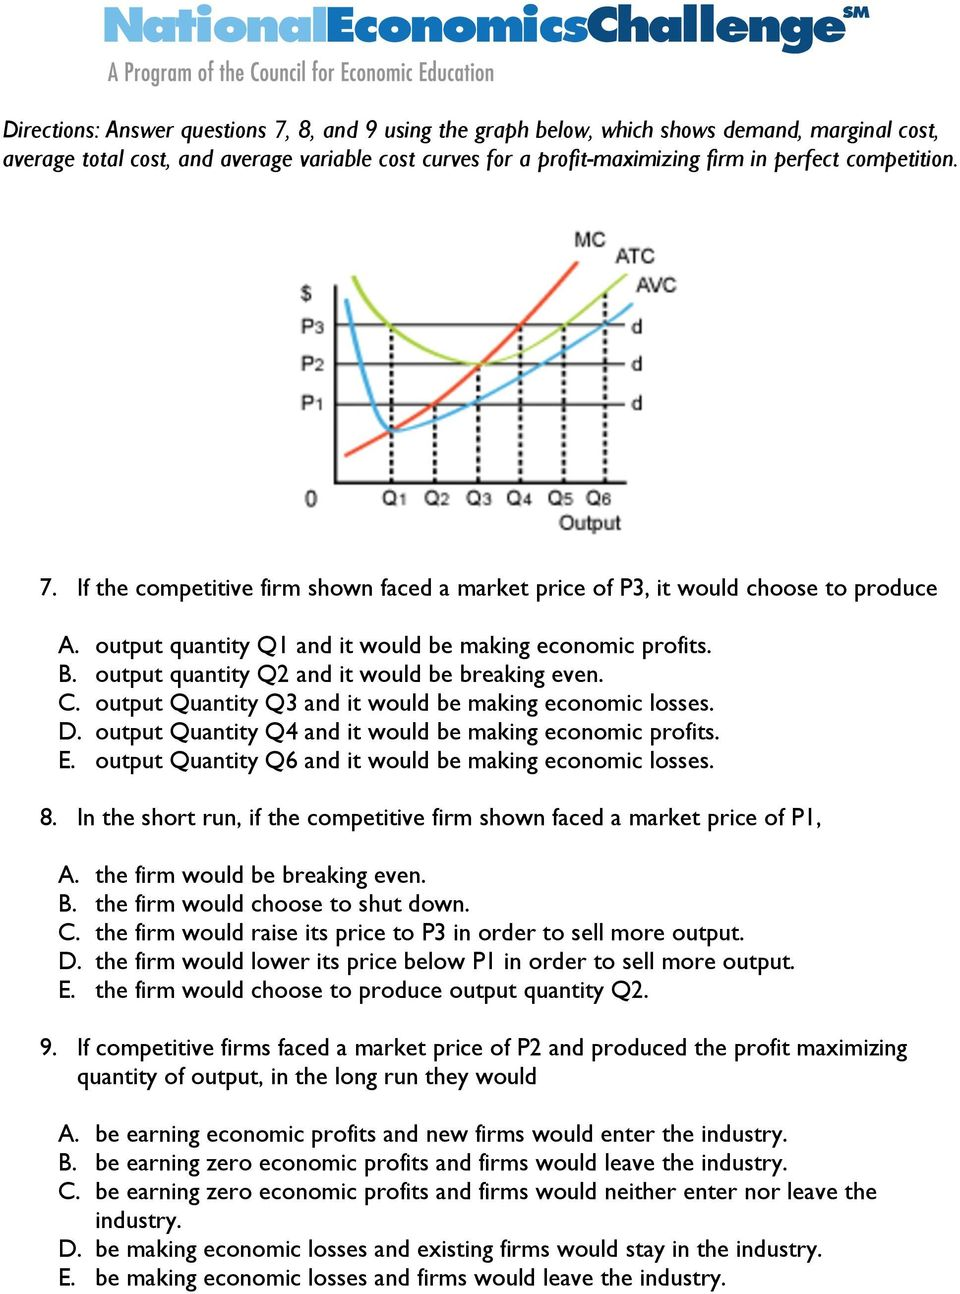 output quantity Q2 and it would be breaking even. C. output Quantity Q3 and it would be making economic losses. D. output Quantity Q4 and it would be making economic profits. E.